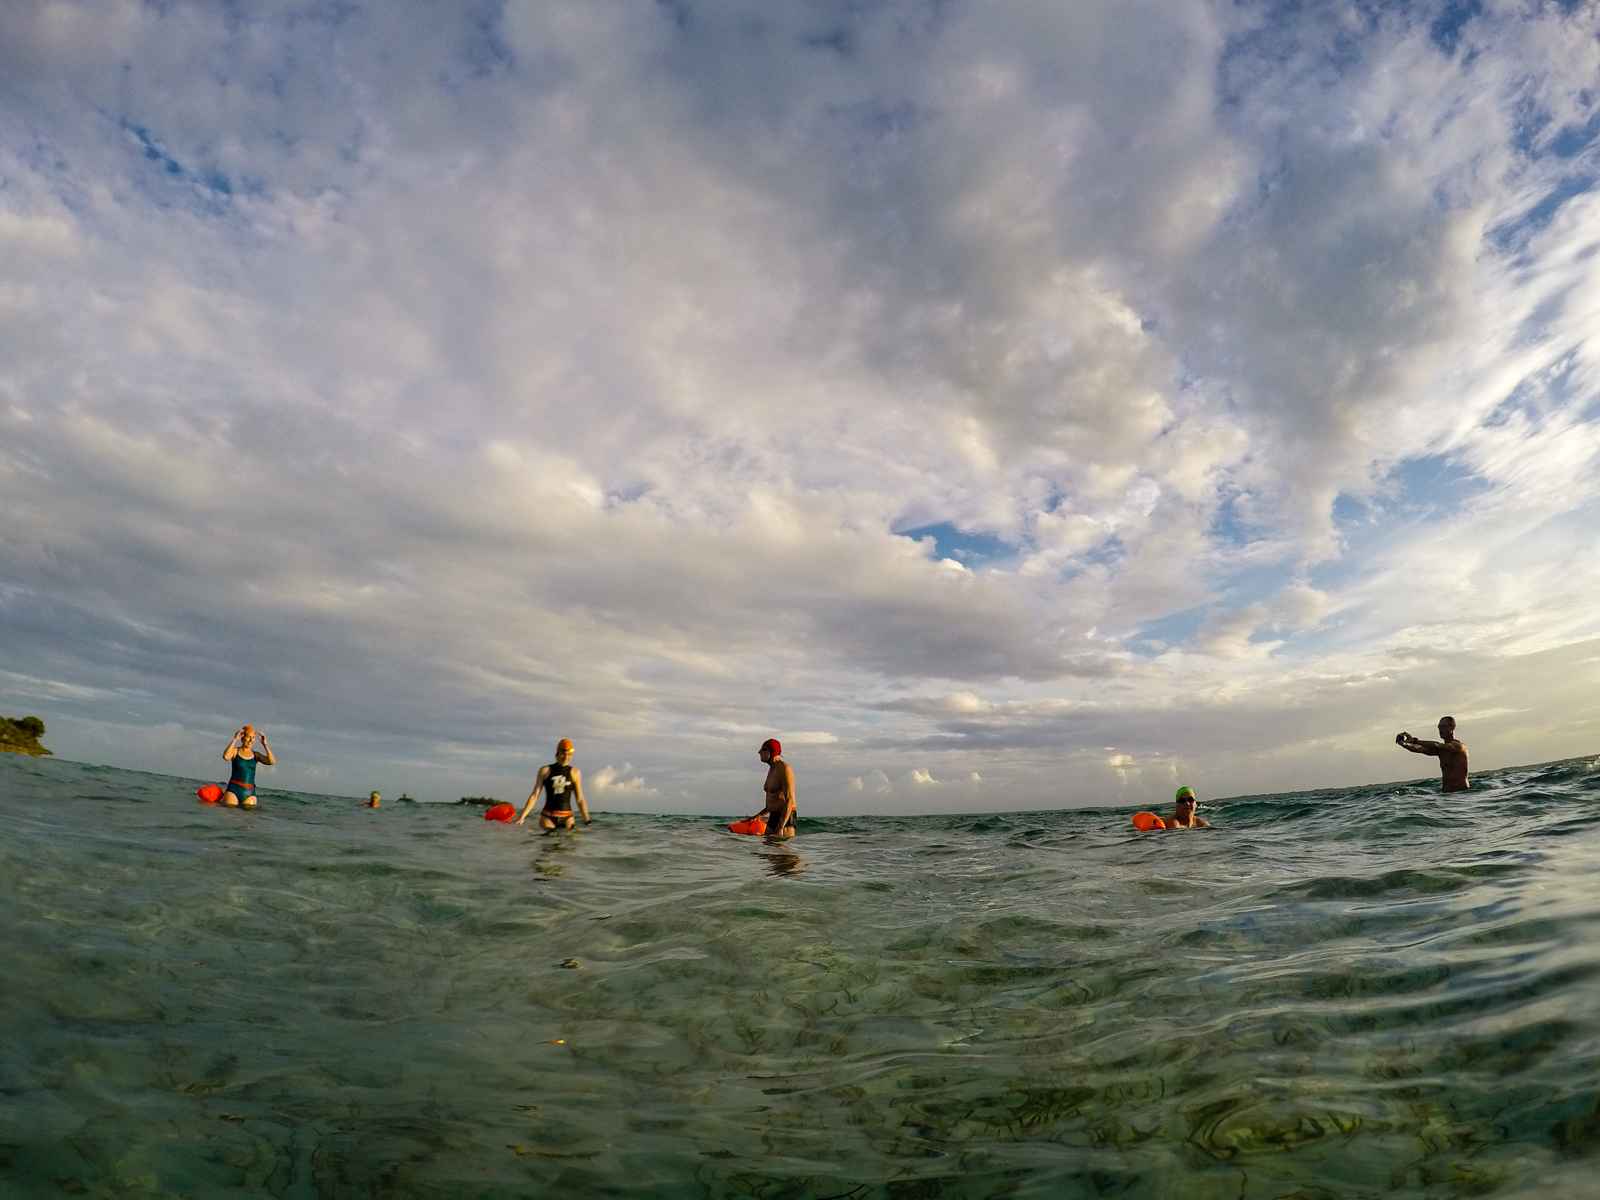 Fish Cay delivered wildlife, fun and splashy waves, great light and a group swim.